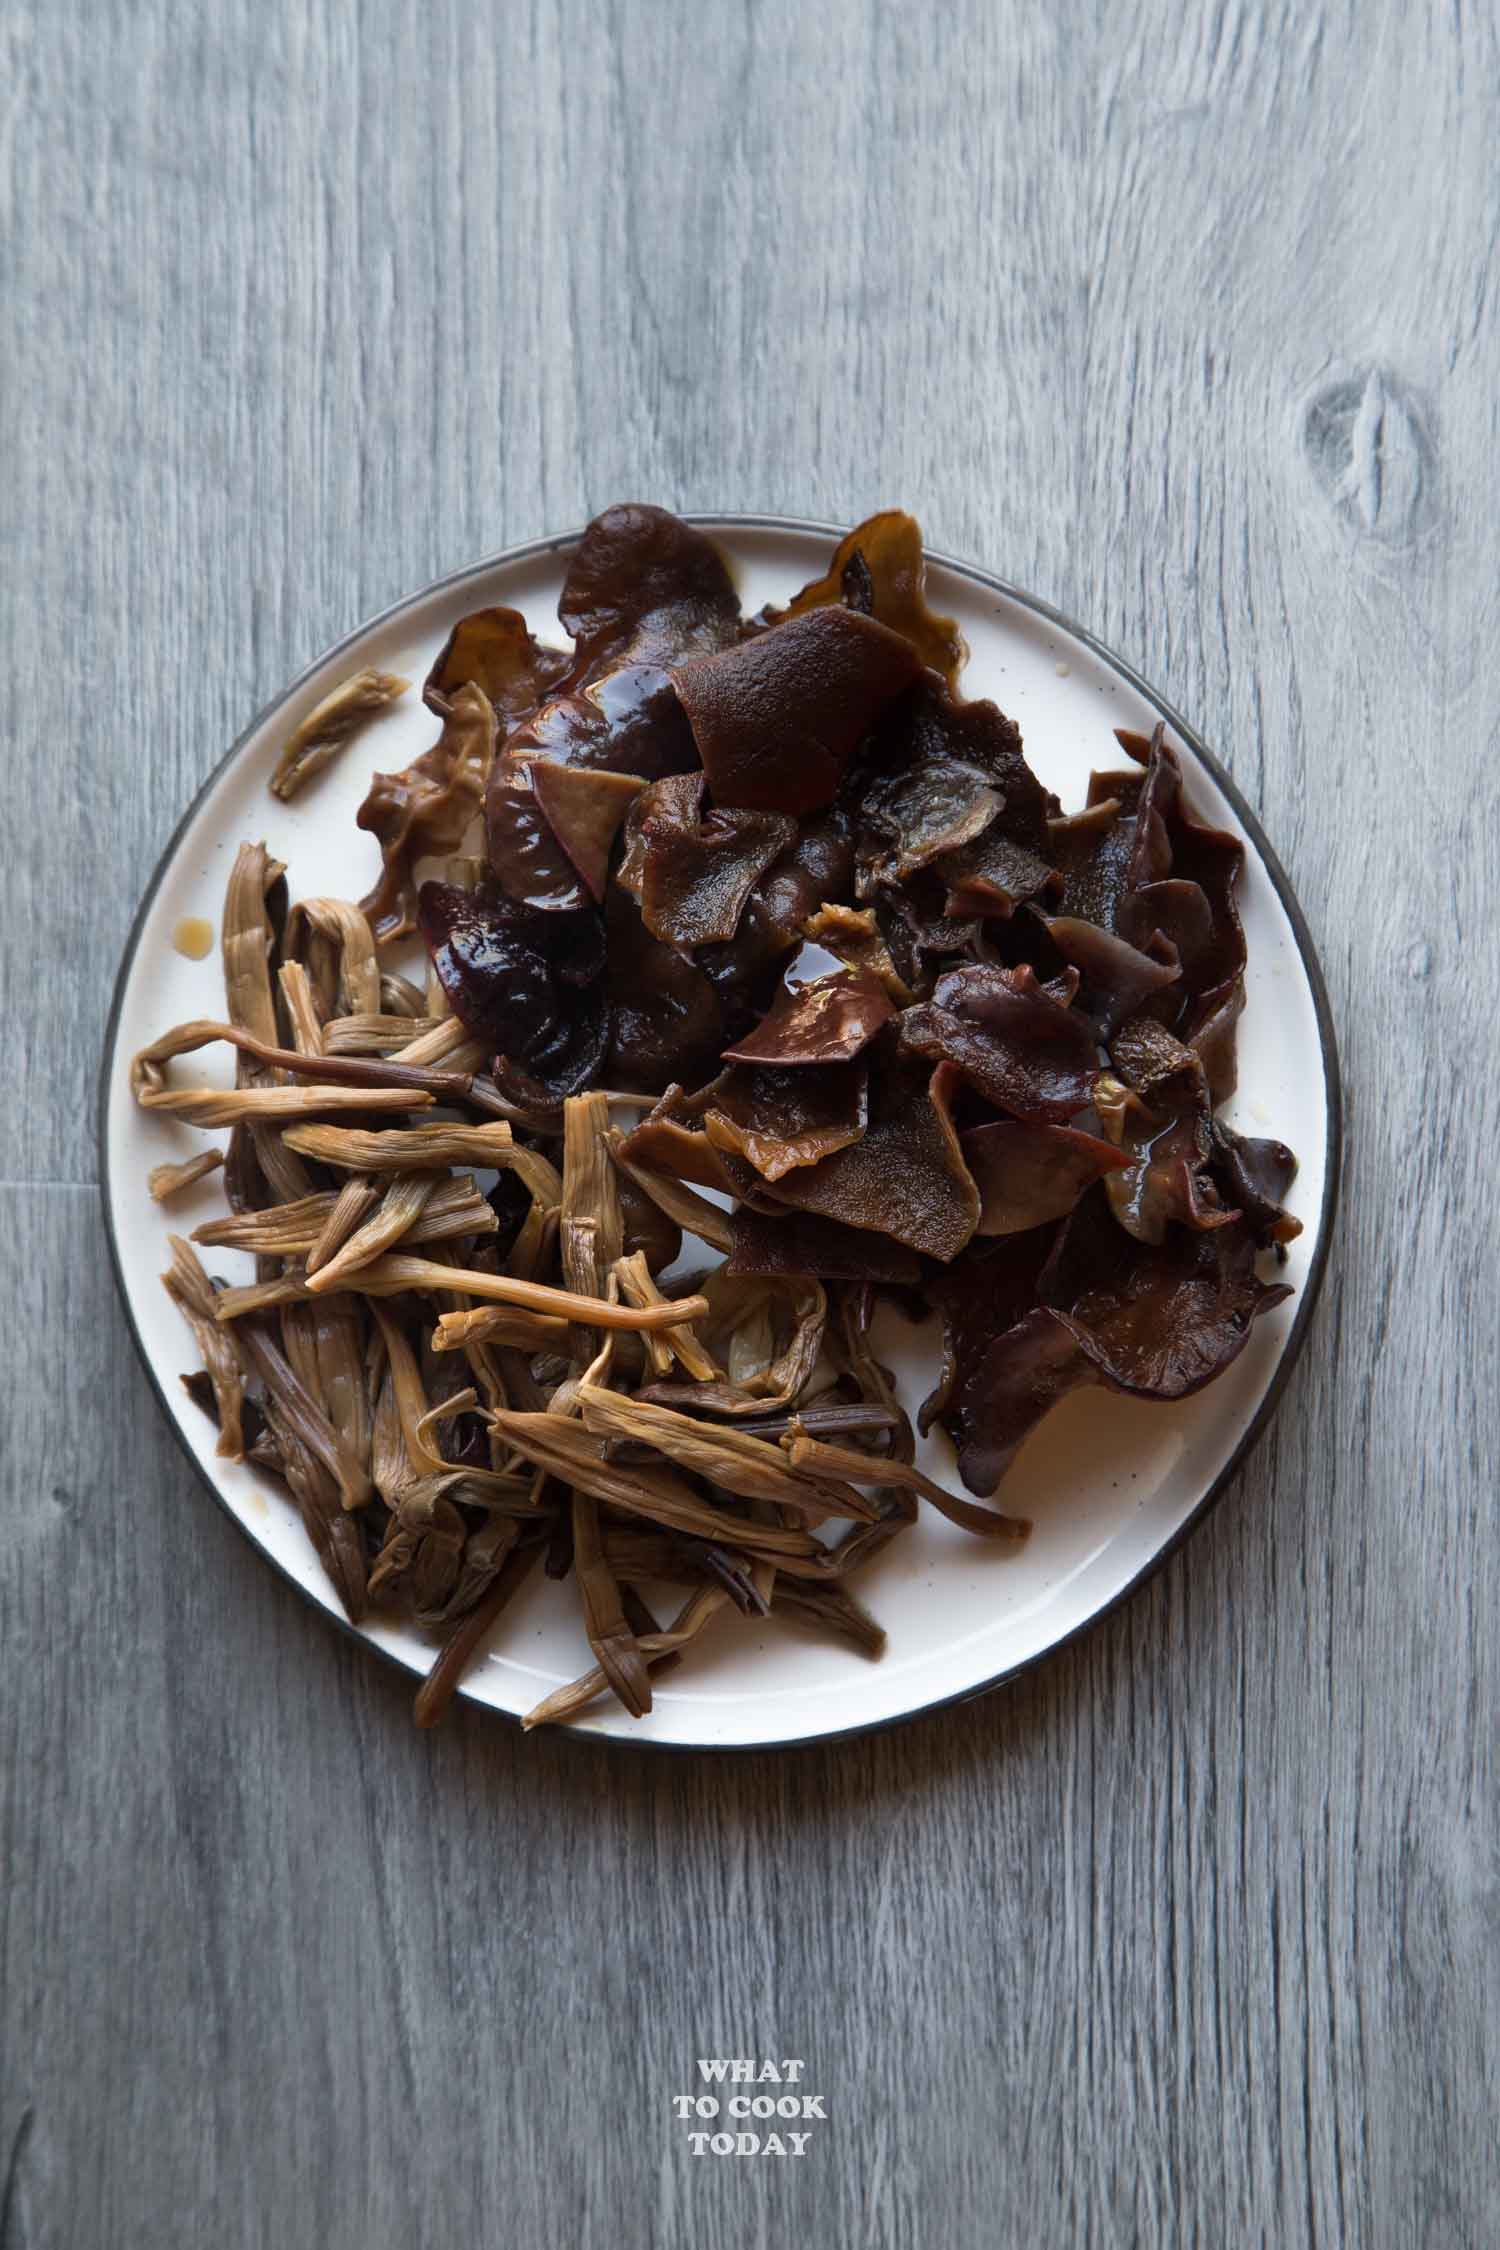 Dried lily buds and wood ear mushrooms